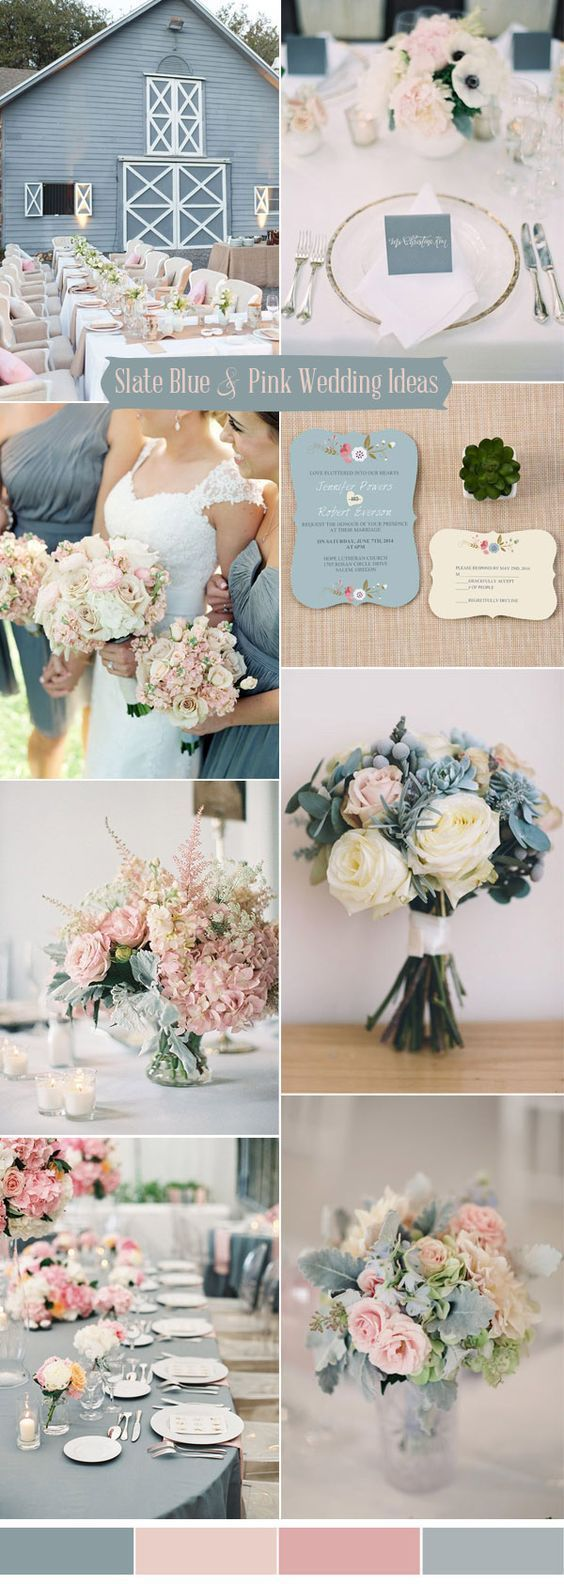 slate blue and blush pink wedding colors ideas | Planning A ...